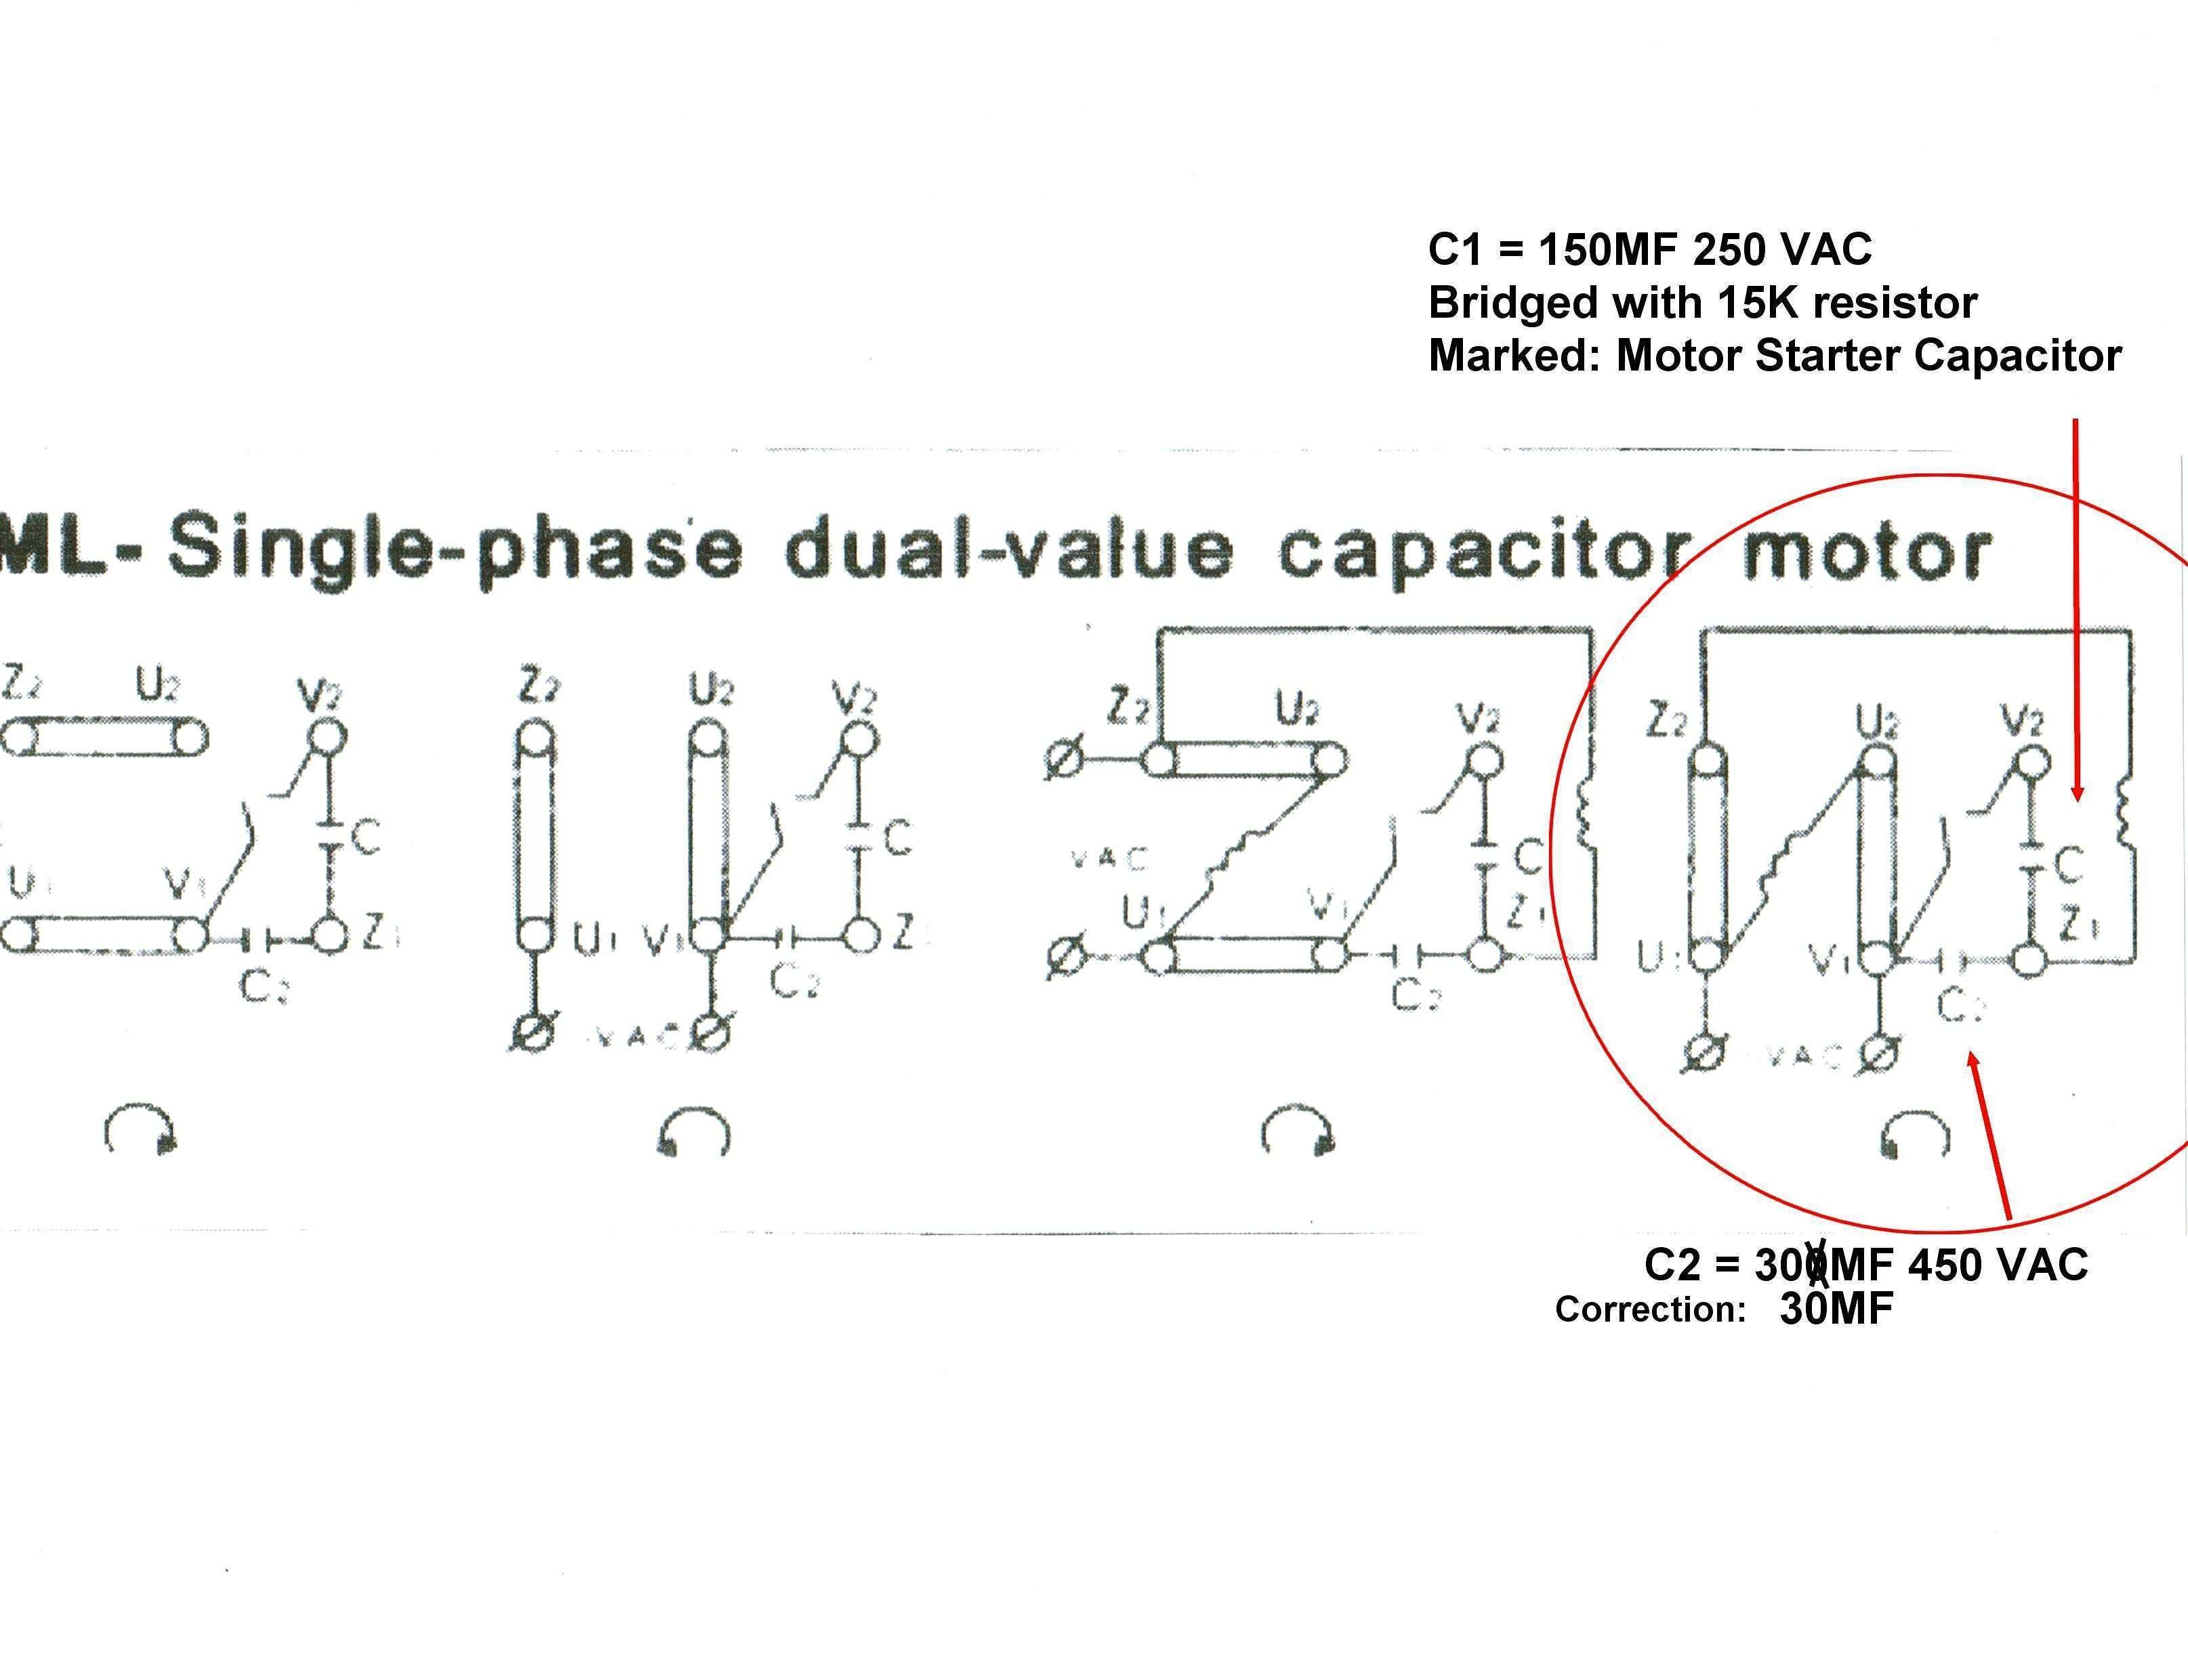 3 phase 6 lead motor wiring diagram free wiring diagram